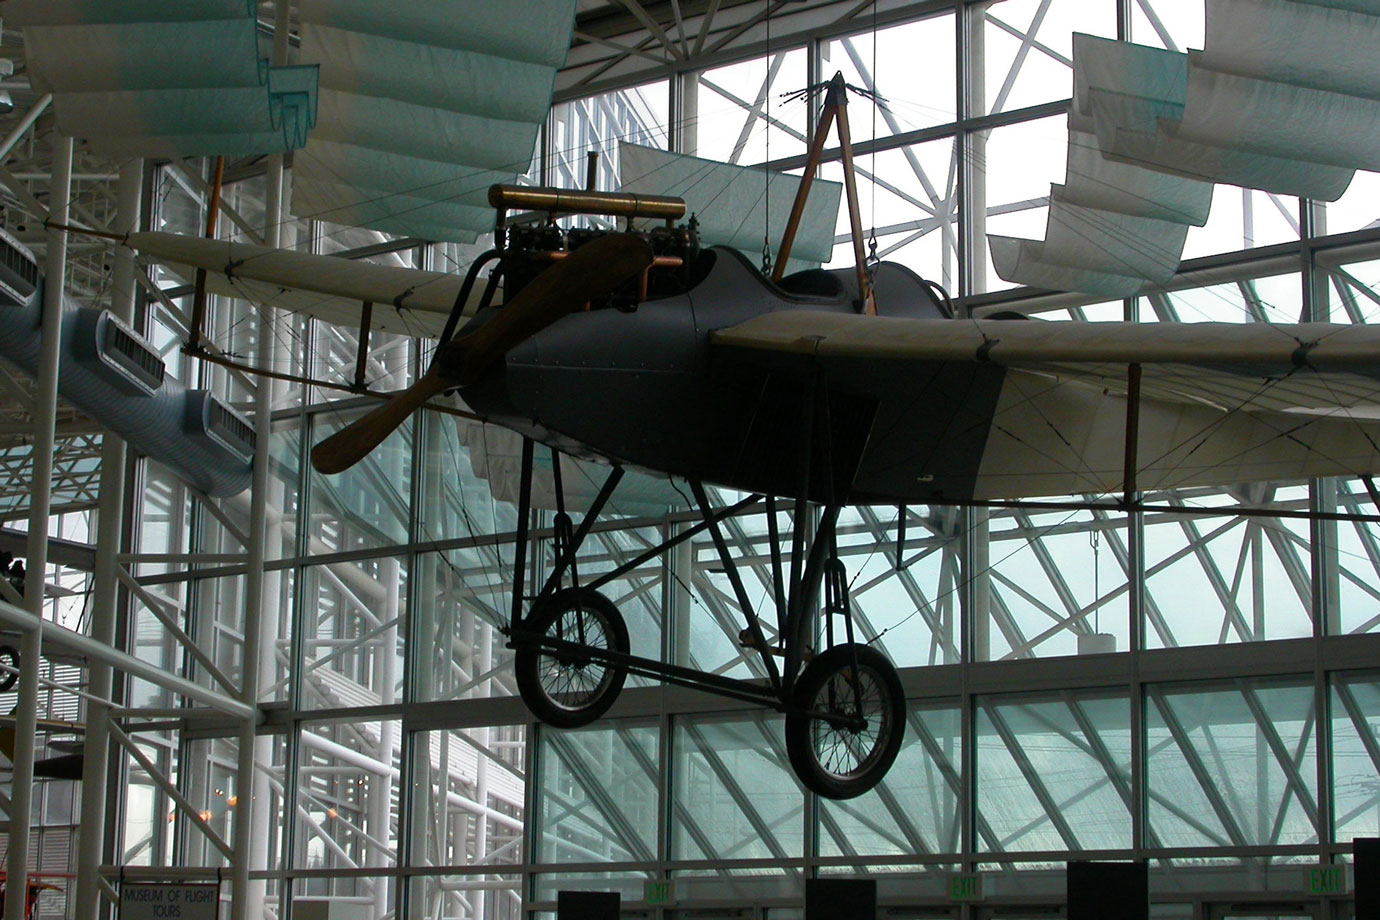 A replica of the Rumpler Taube, Seattle Museum of Flight